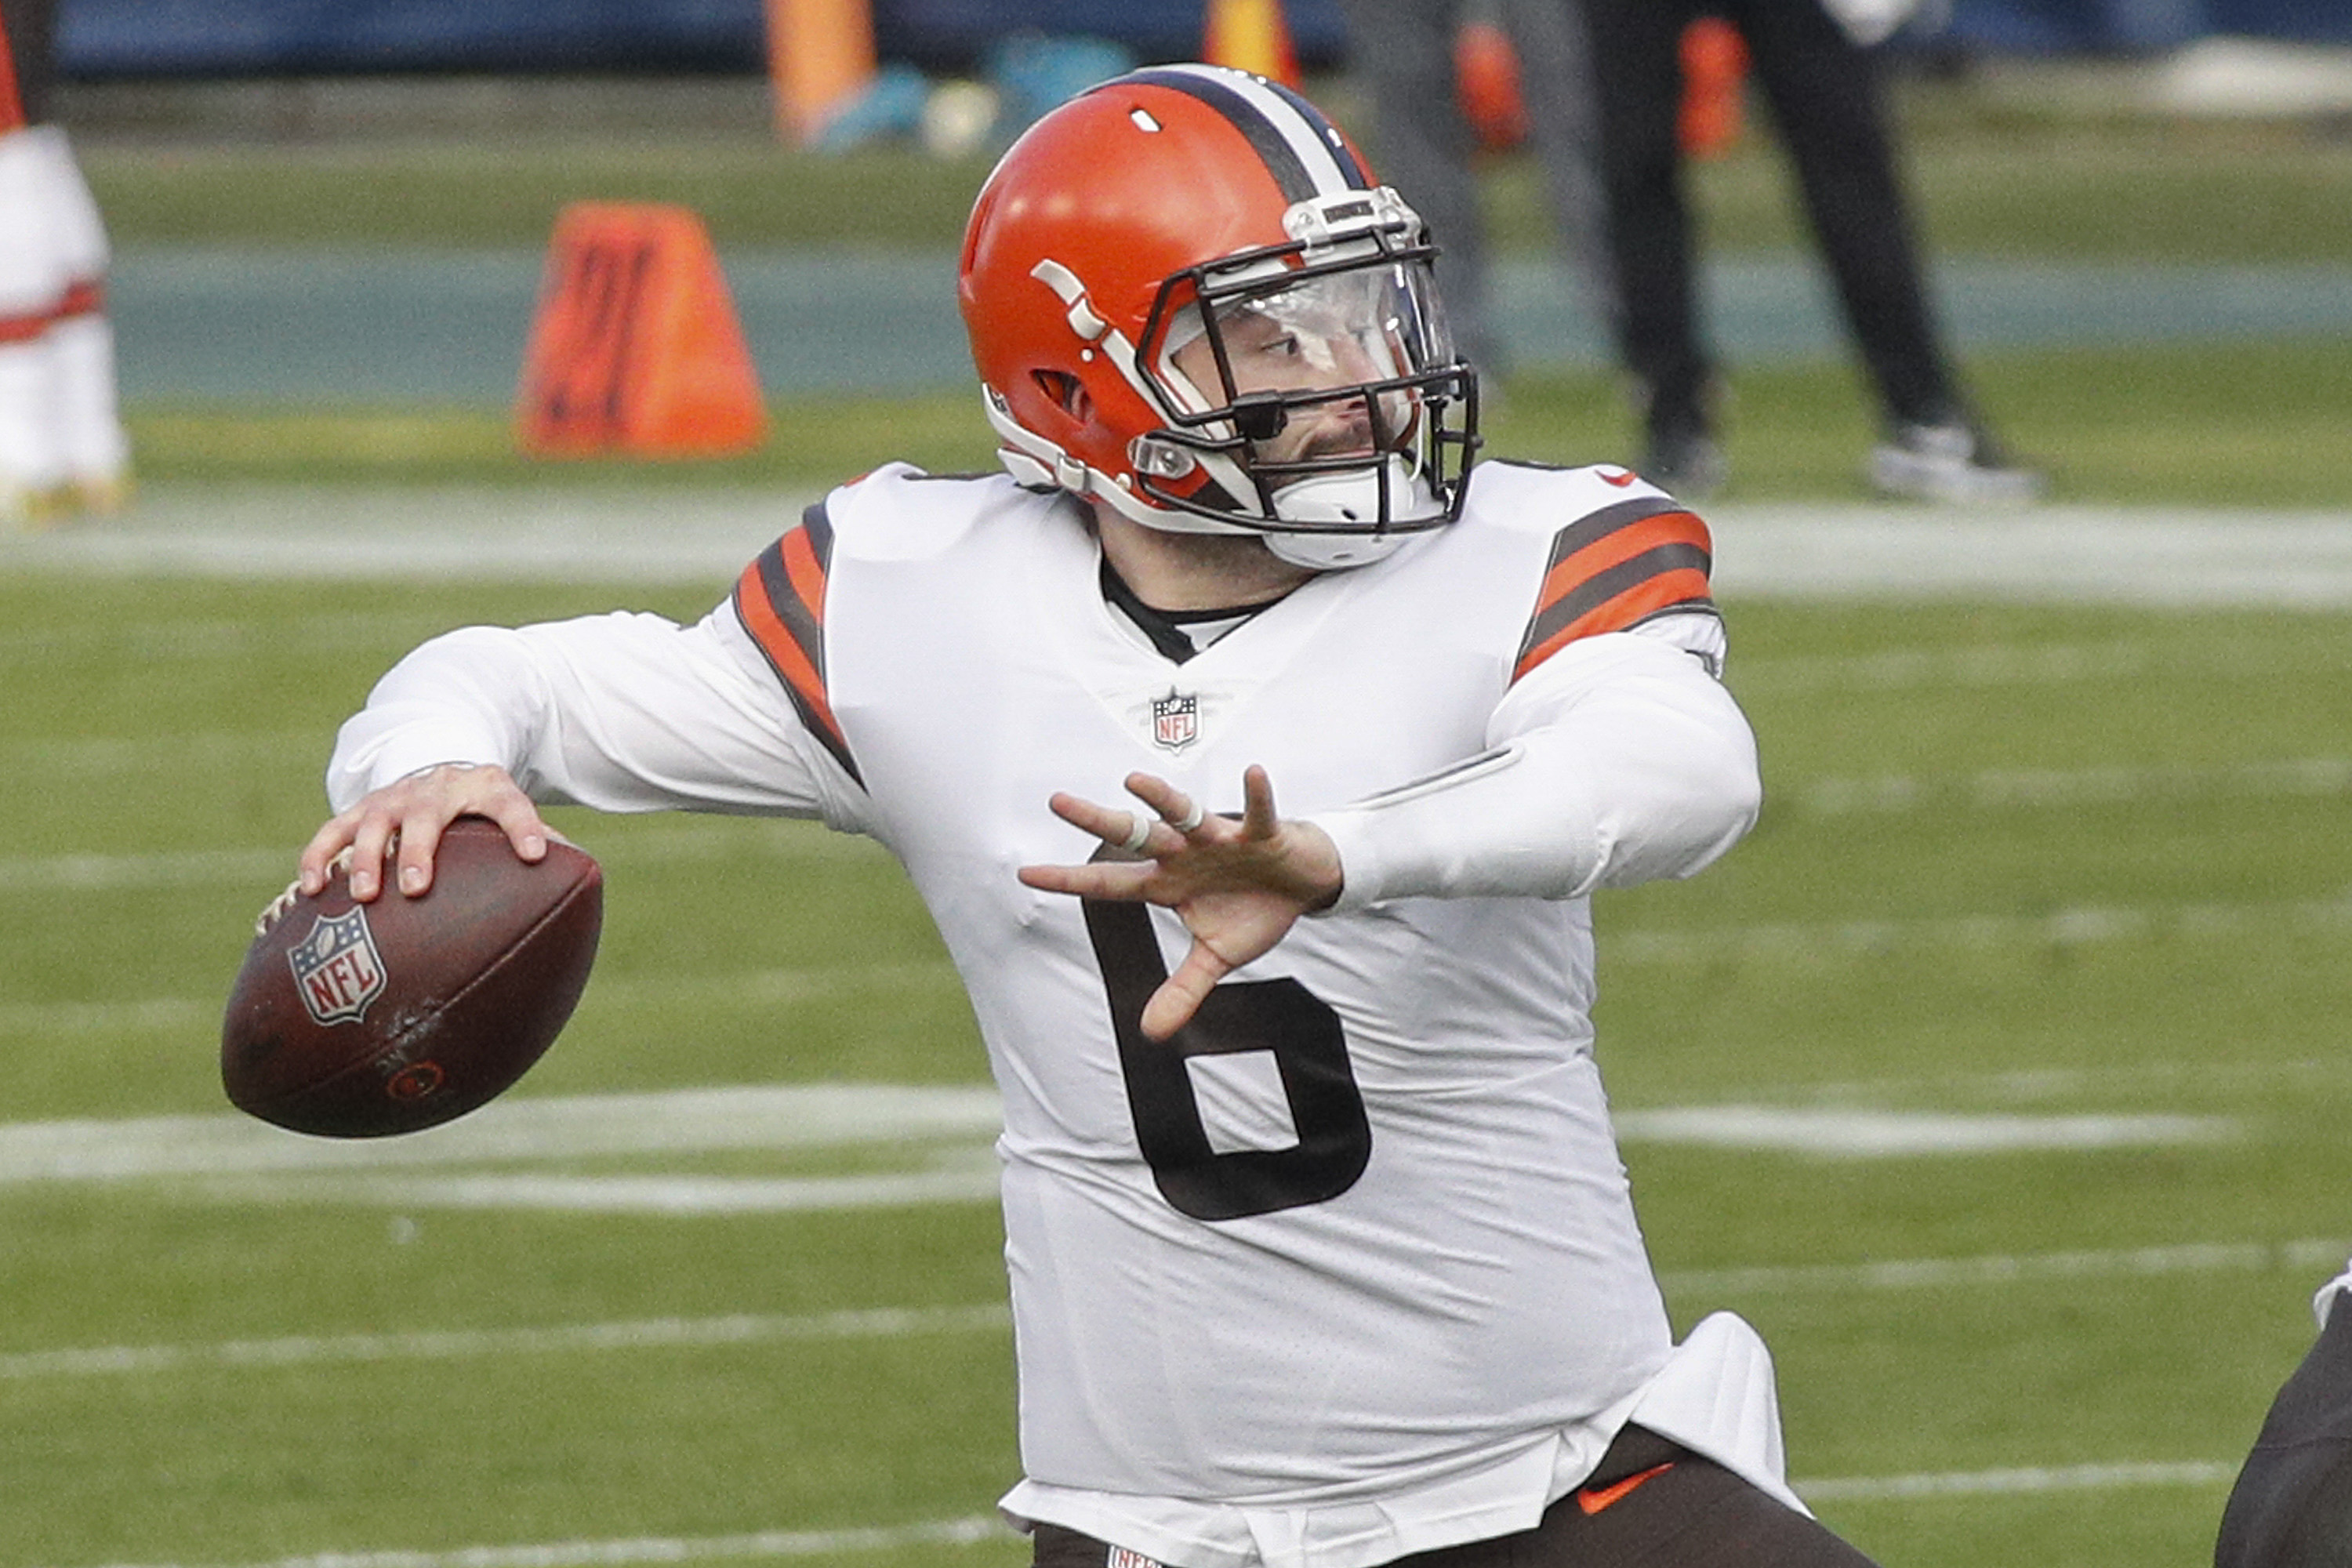 Quarterback Baker Mayfield of the Cleveland Browns plays against the Tennessee Titans at Nissan Stadium on December 06, 2020 in Nashville, Tennessee.